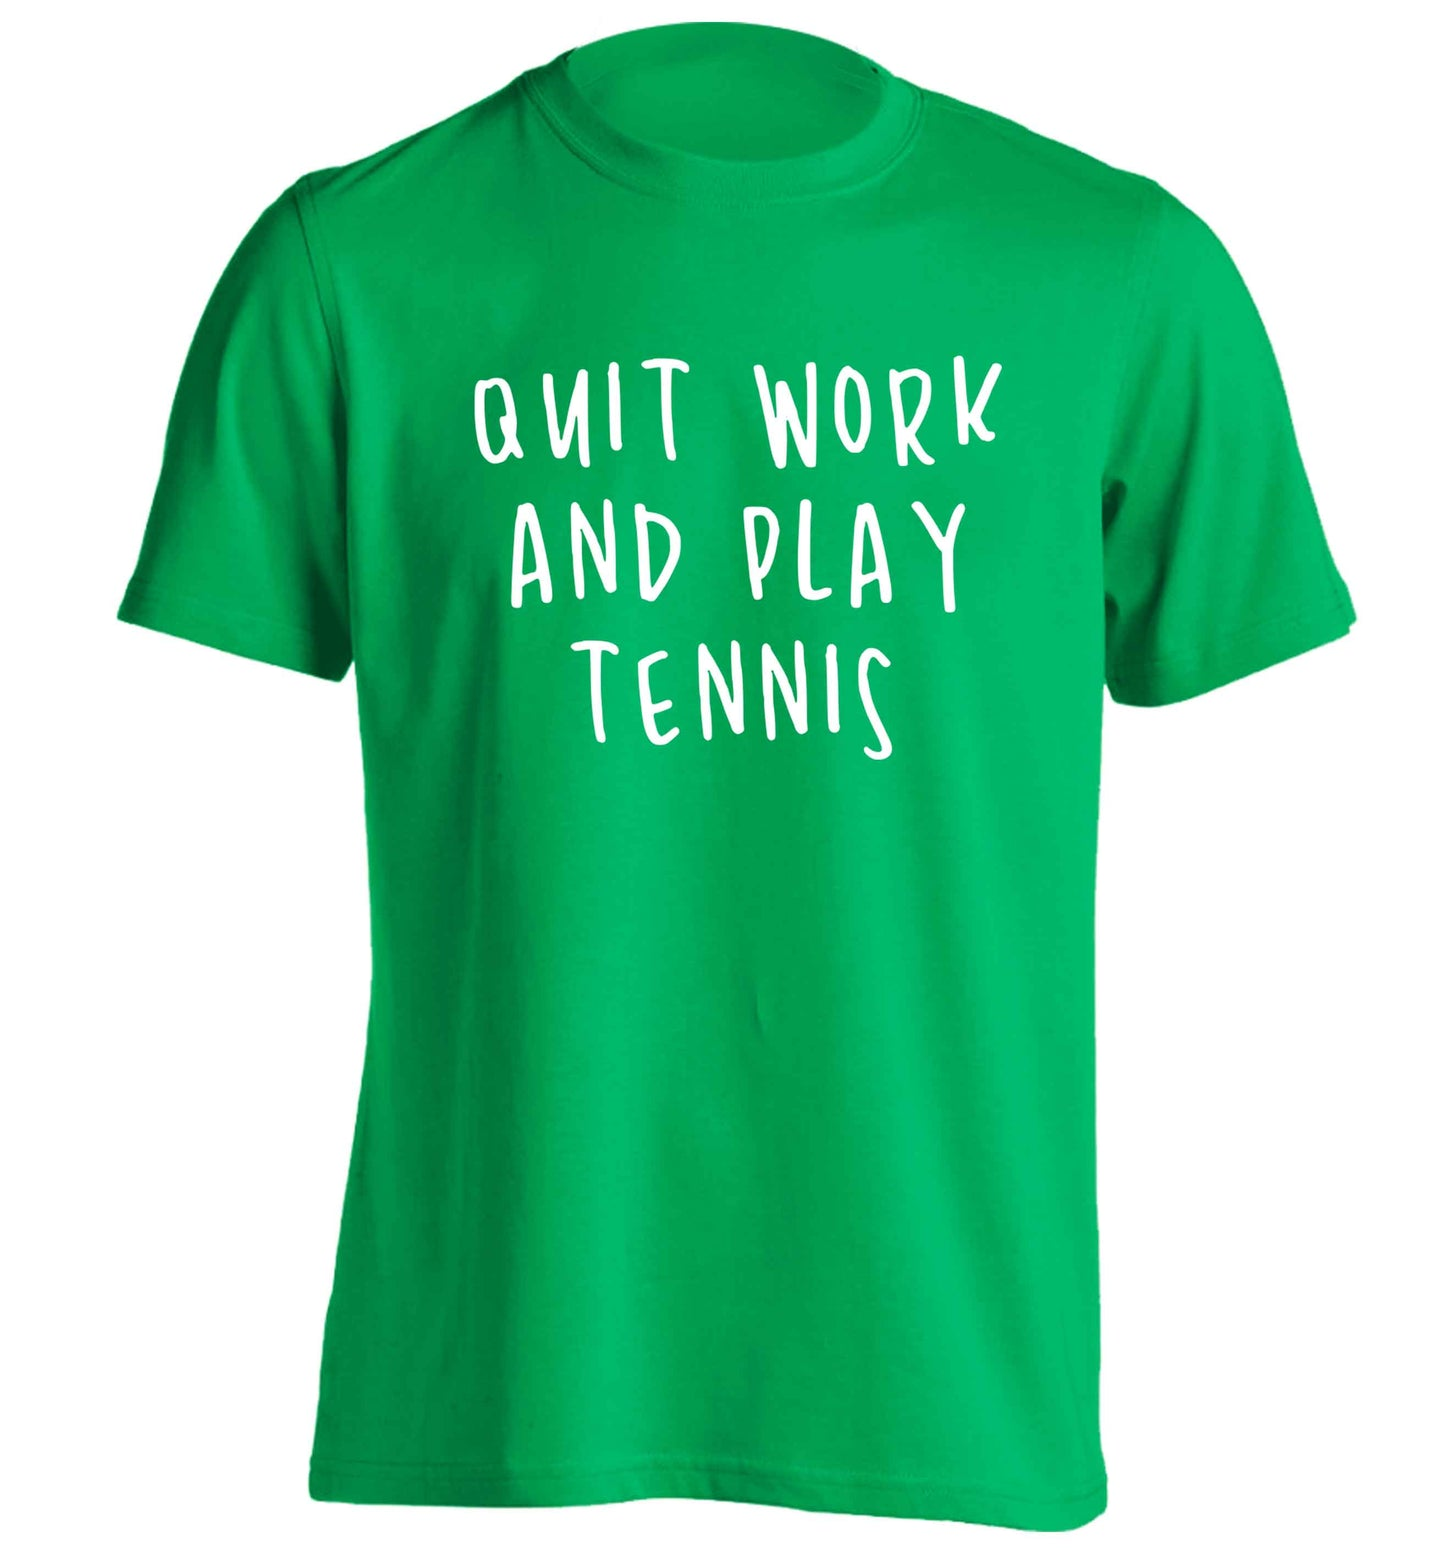 Quit work and play tennis adults unisex green Tshirt 2XL